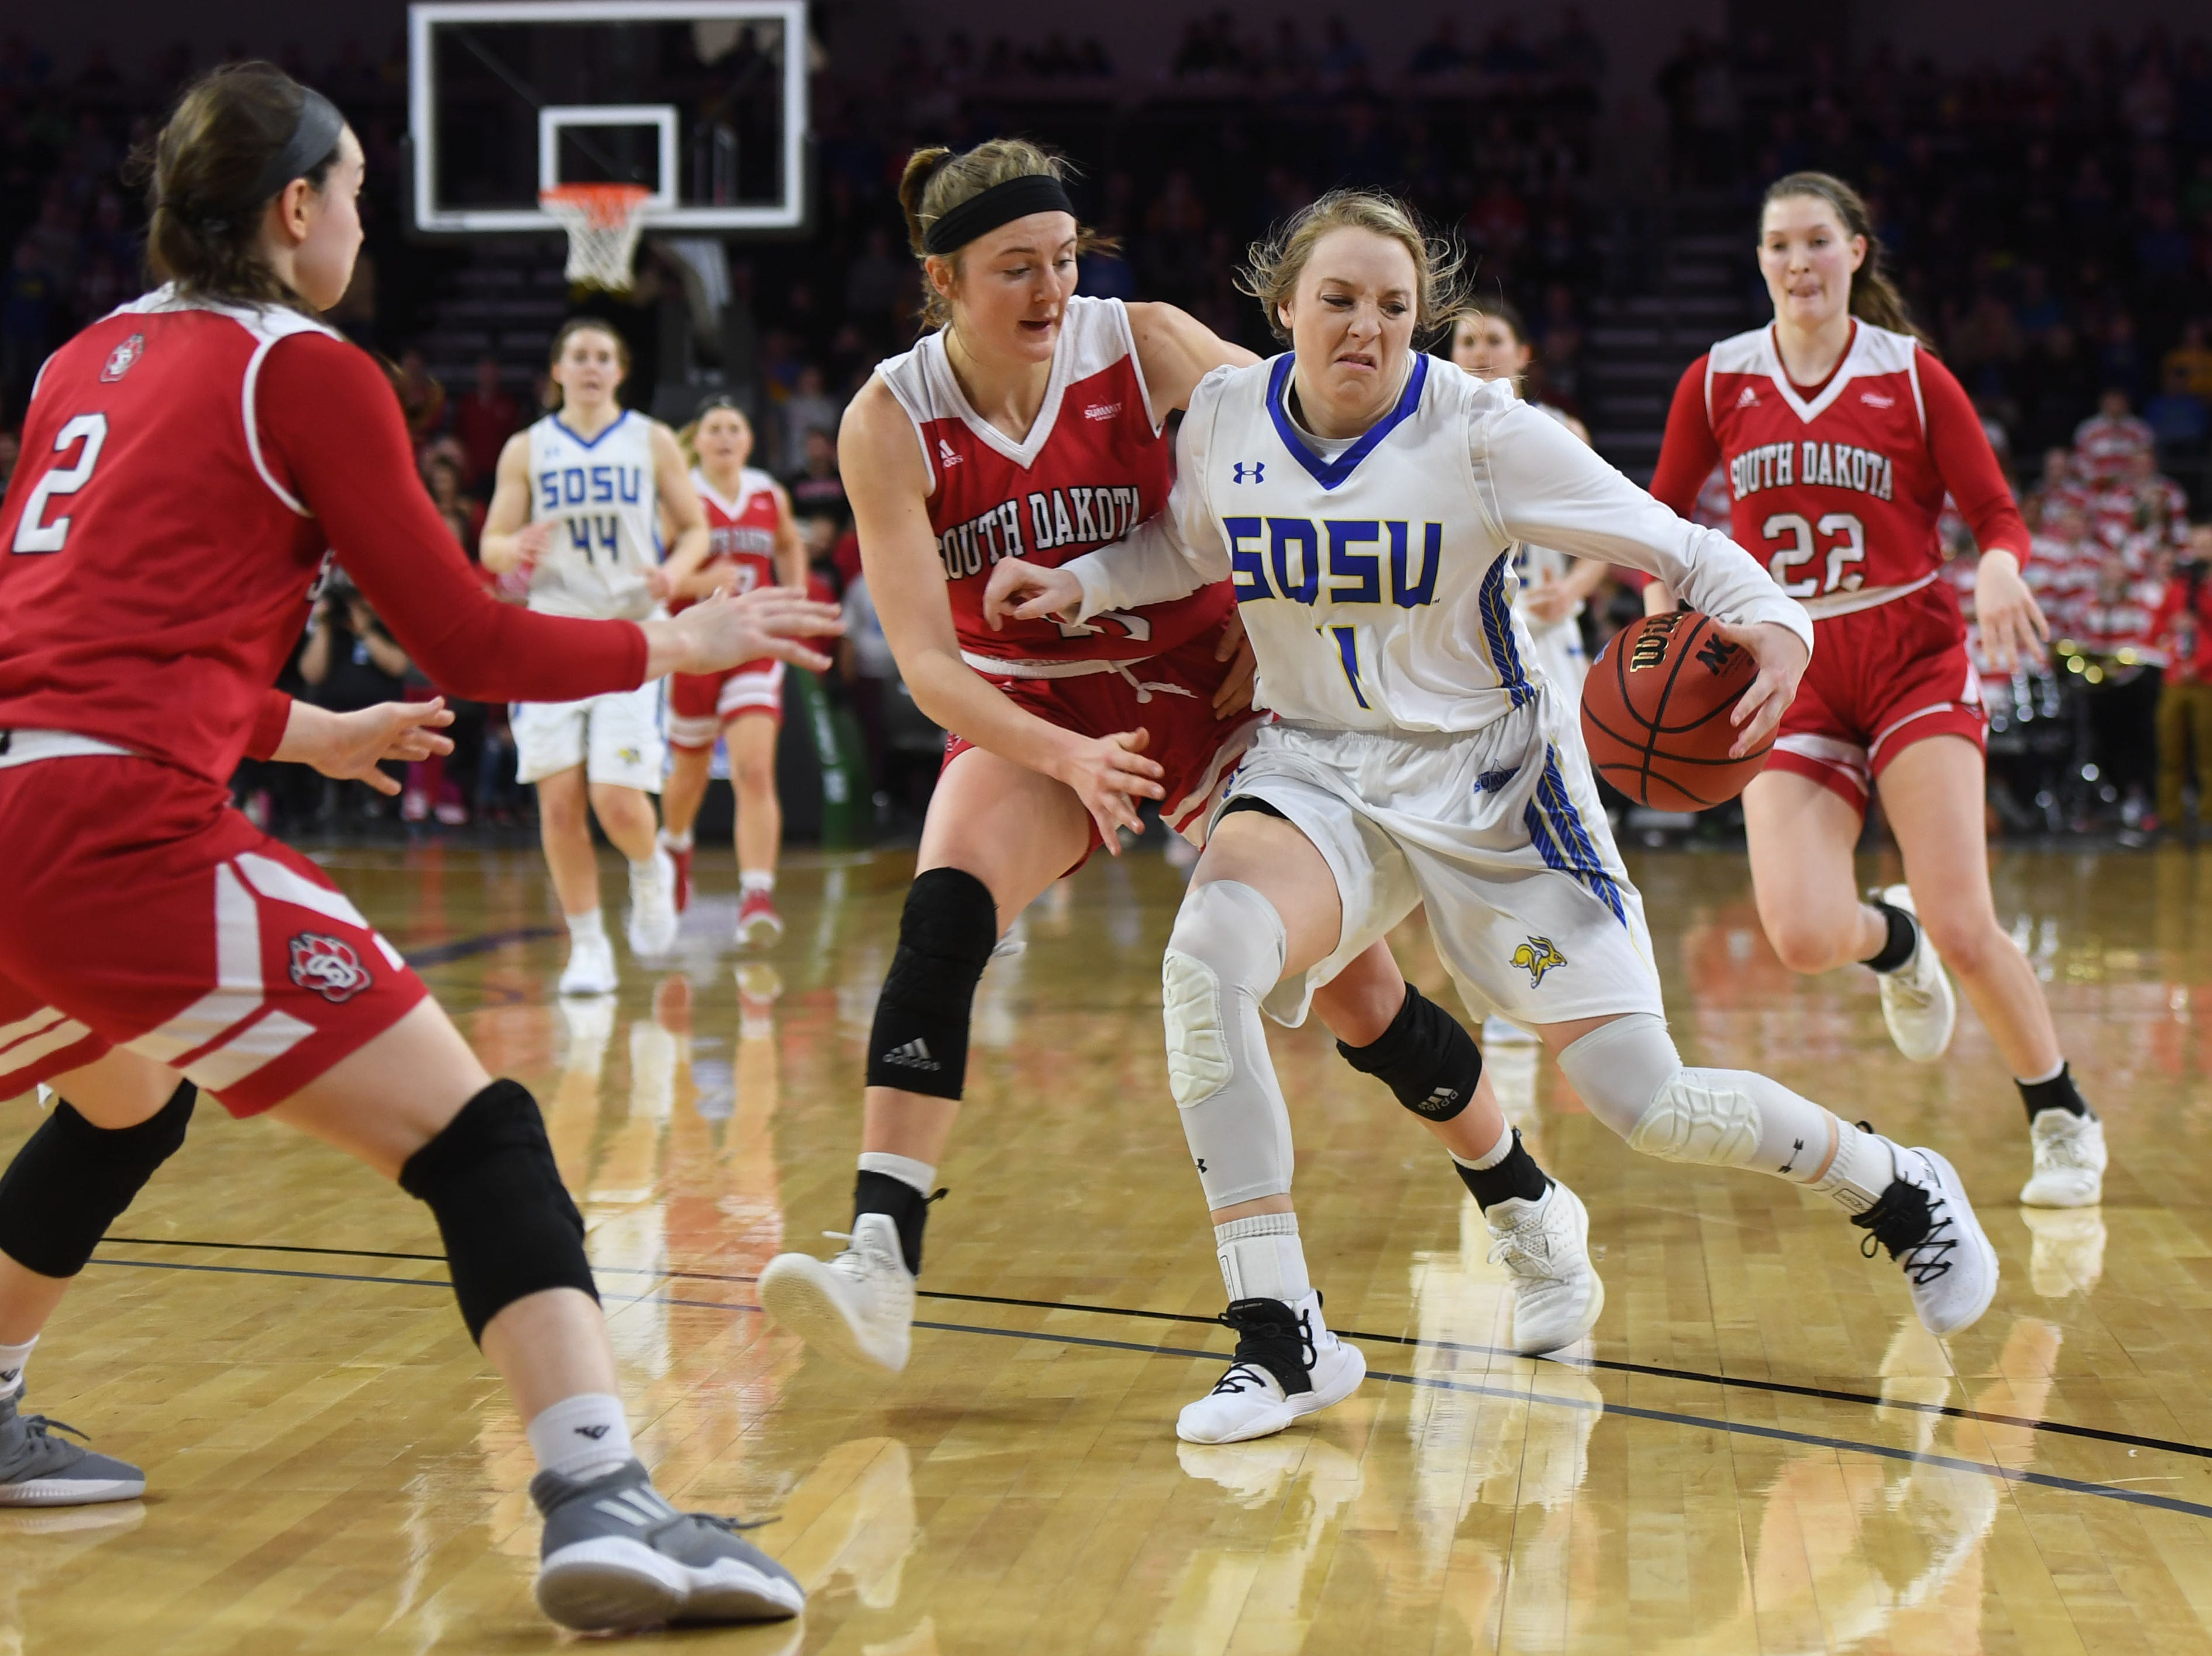 SDSU's Madison Guebert goes against USD defense during the game Tuesday, March 12, in the Summit League women's championship at the Denny Sanford Premier Center in Sioux Falls.